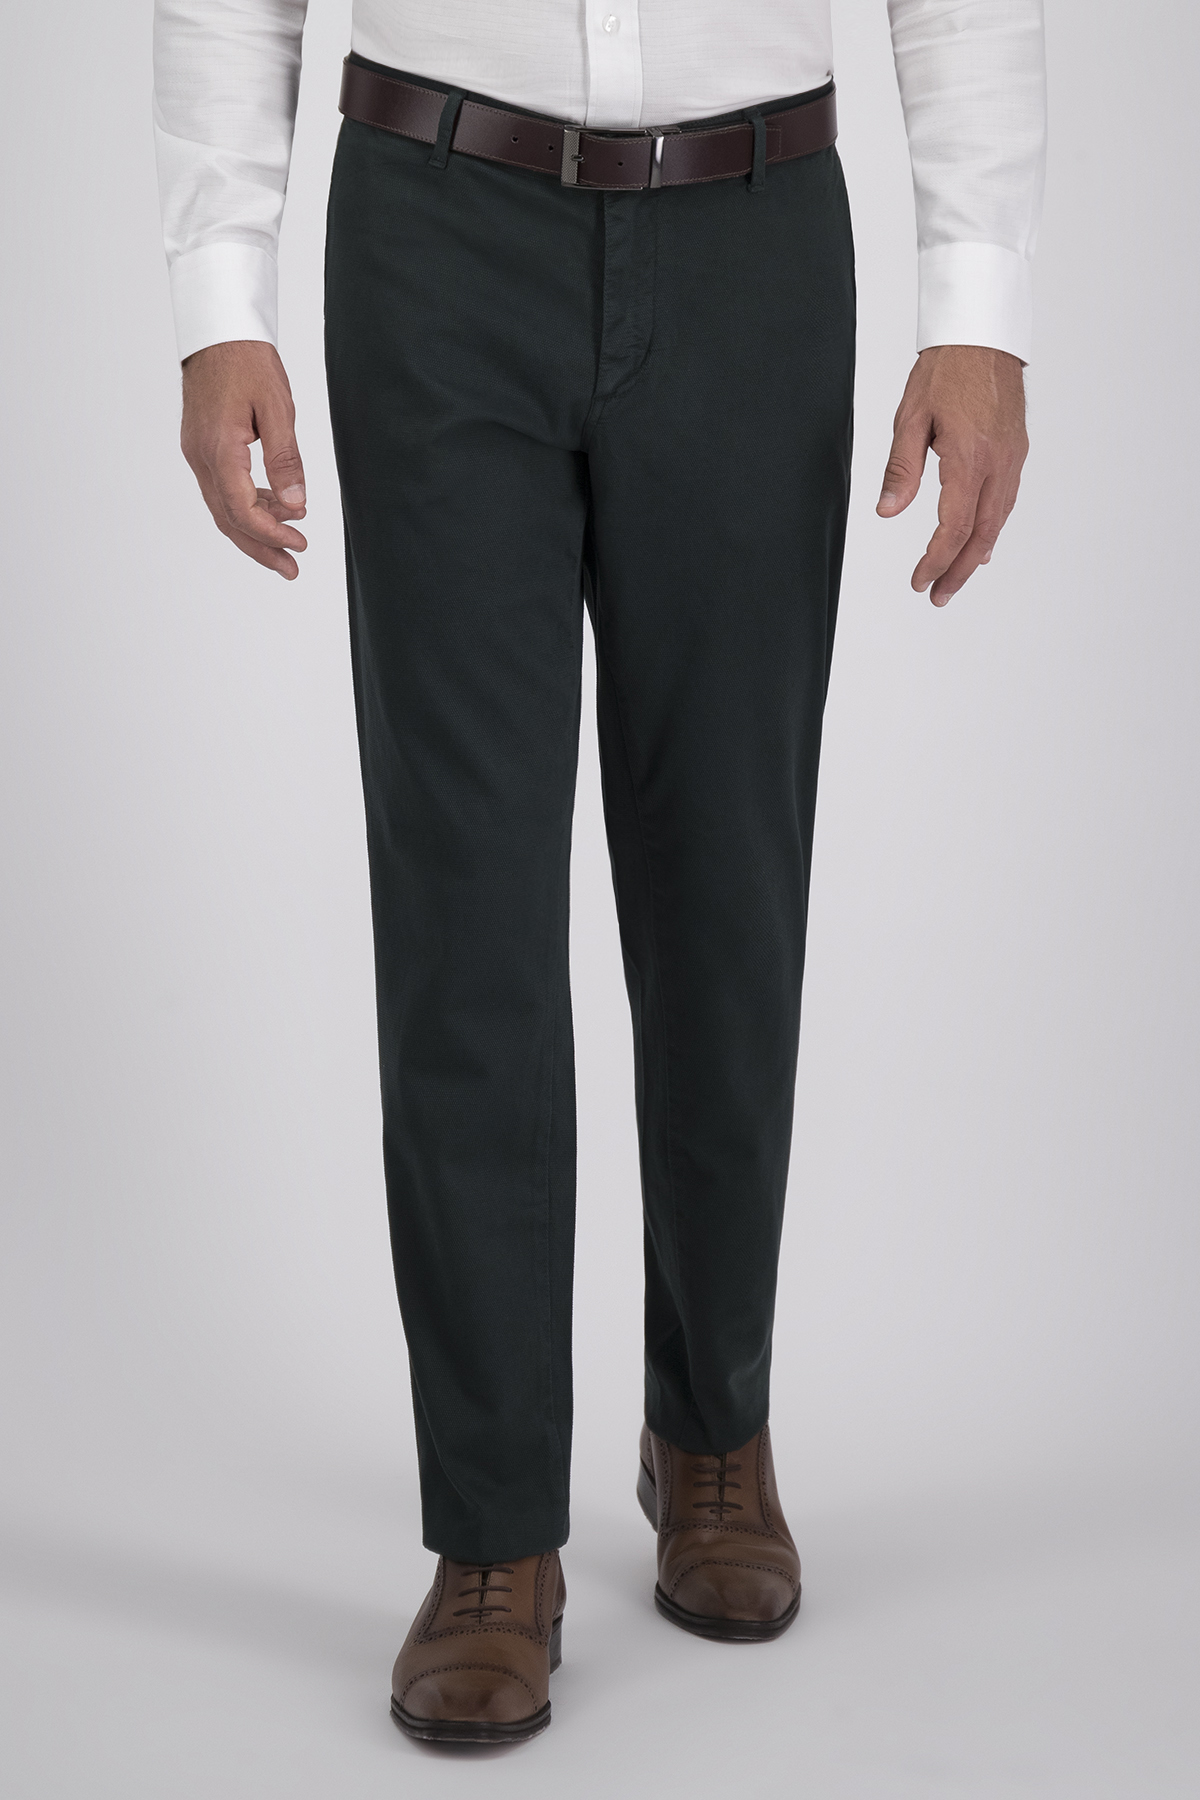 Pantalón Sport High Life, Algodón 100%  Verde, Corte Slim, Tipo Chino, Made in Italy.